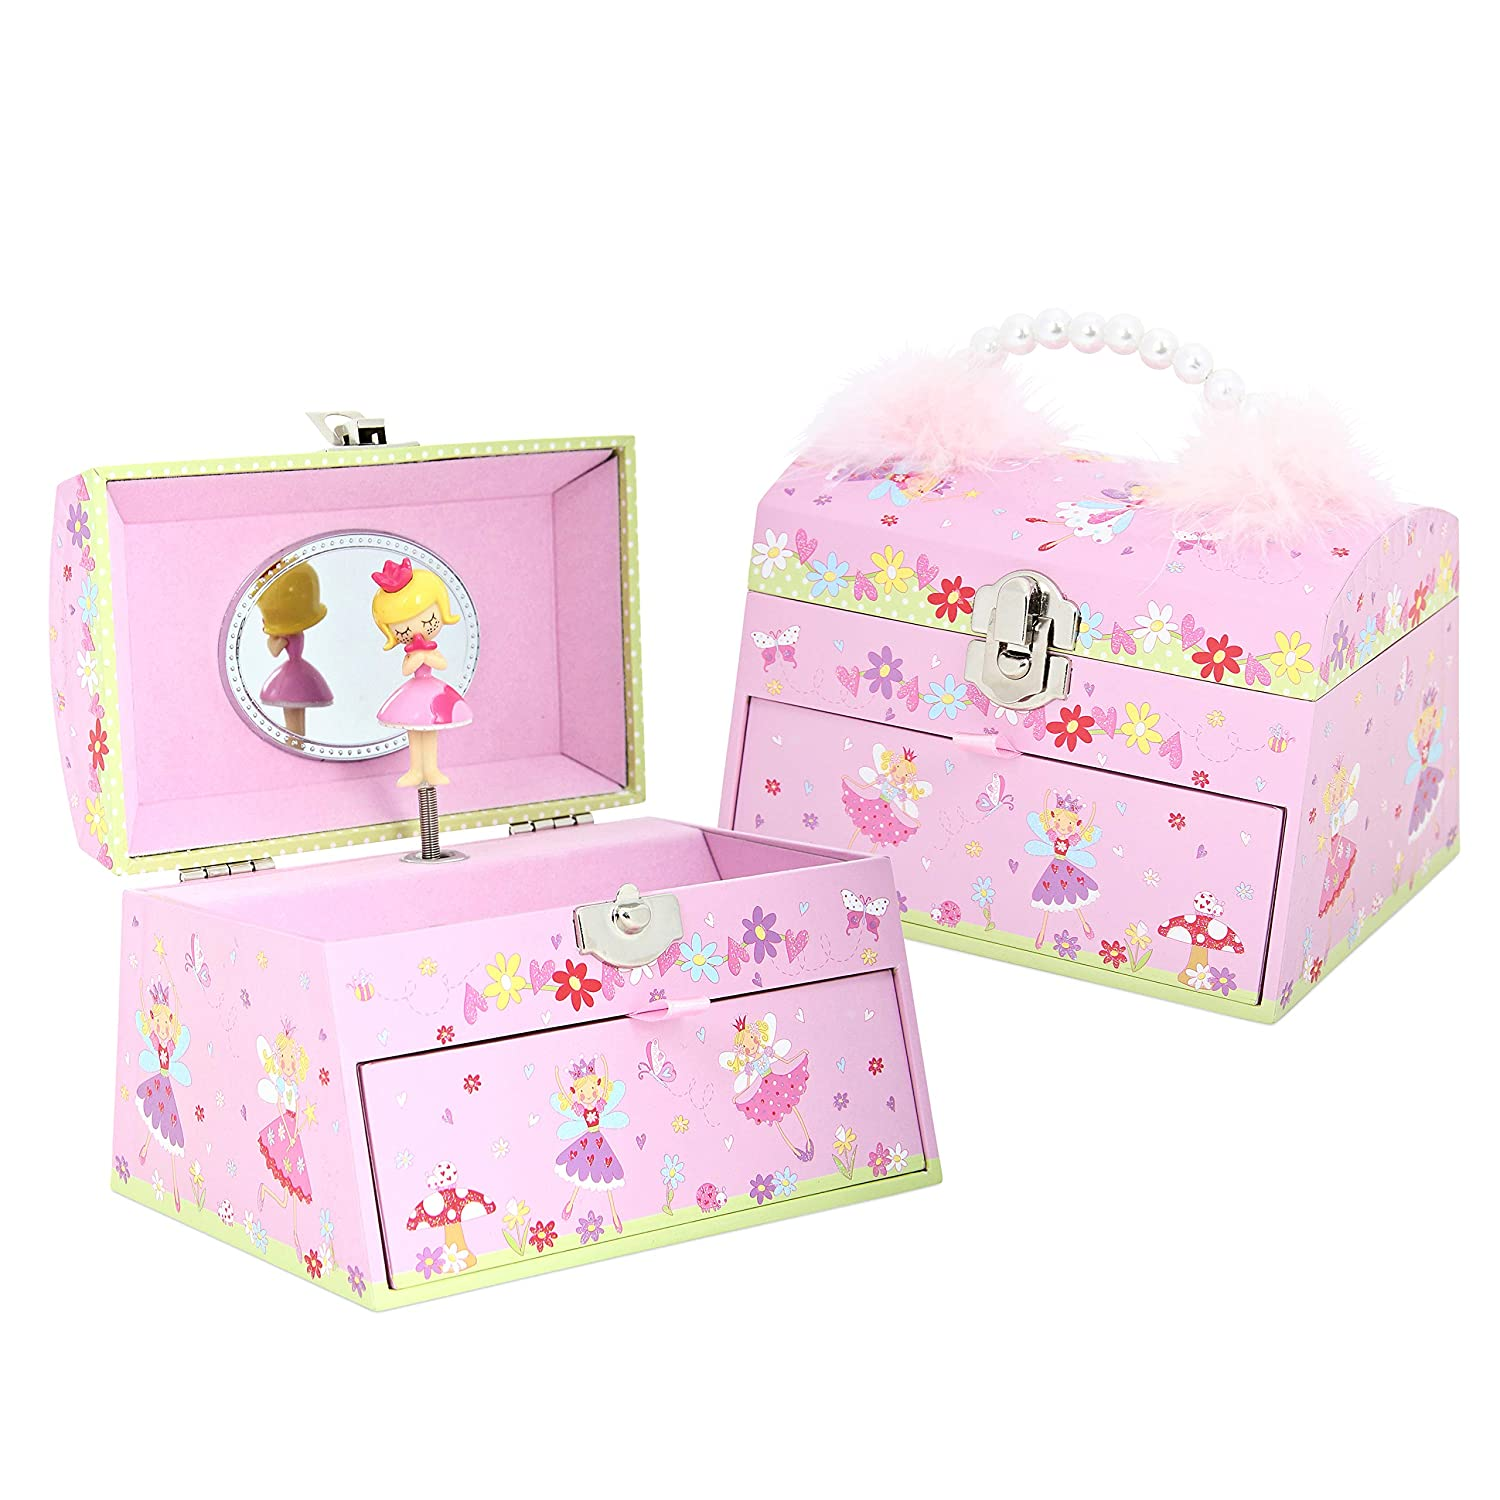 Lucy Locket Fairy Tale Kids Musical Jewellery Box - Pink Glittery Kids Music Box with Bead Carry Handle BD/2624